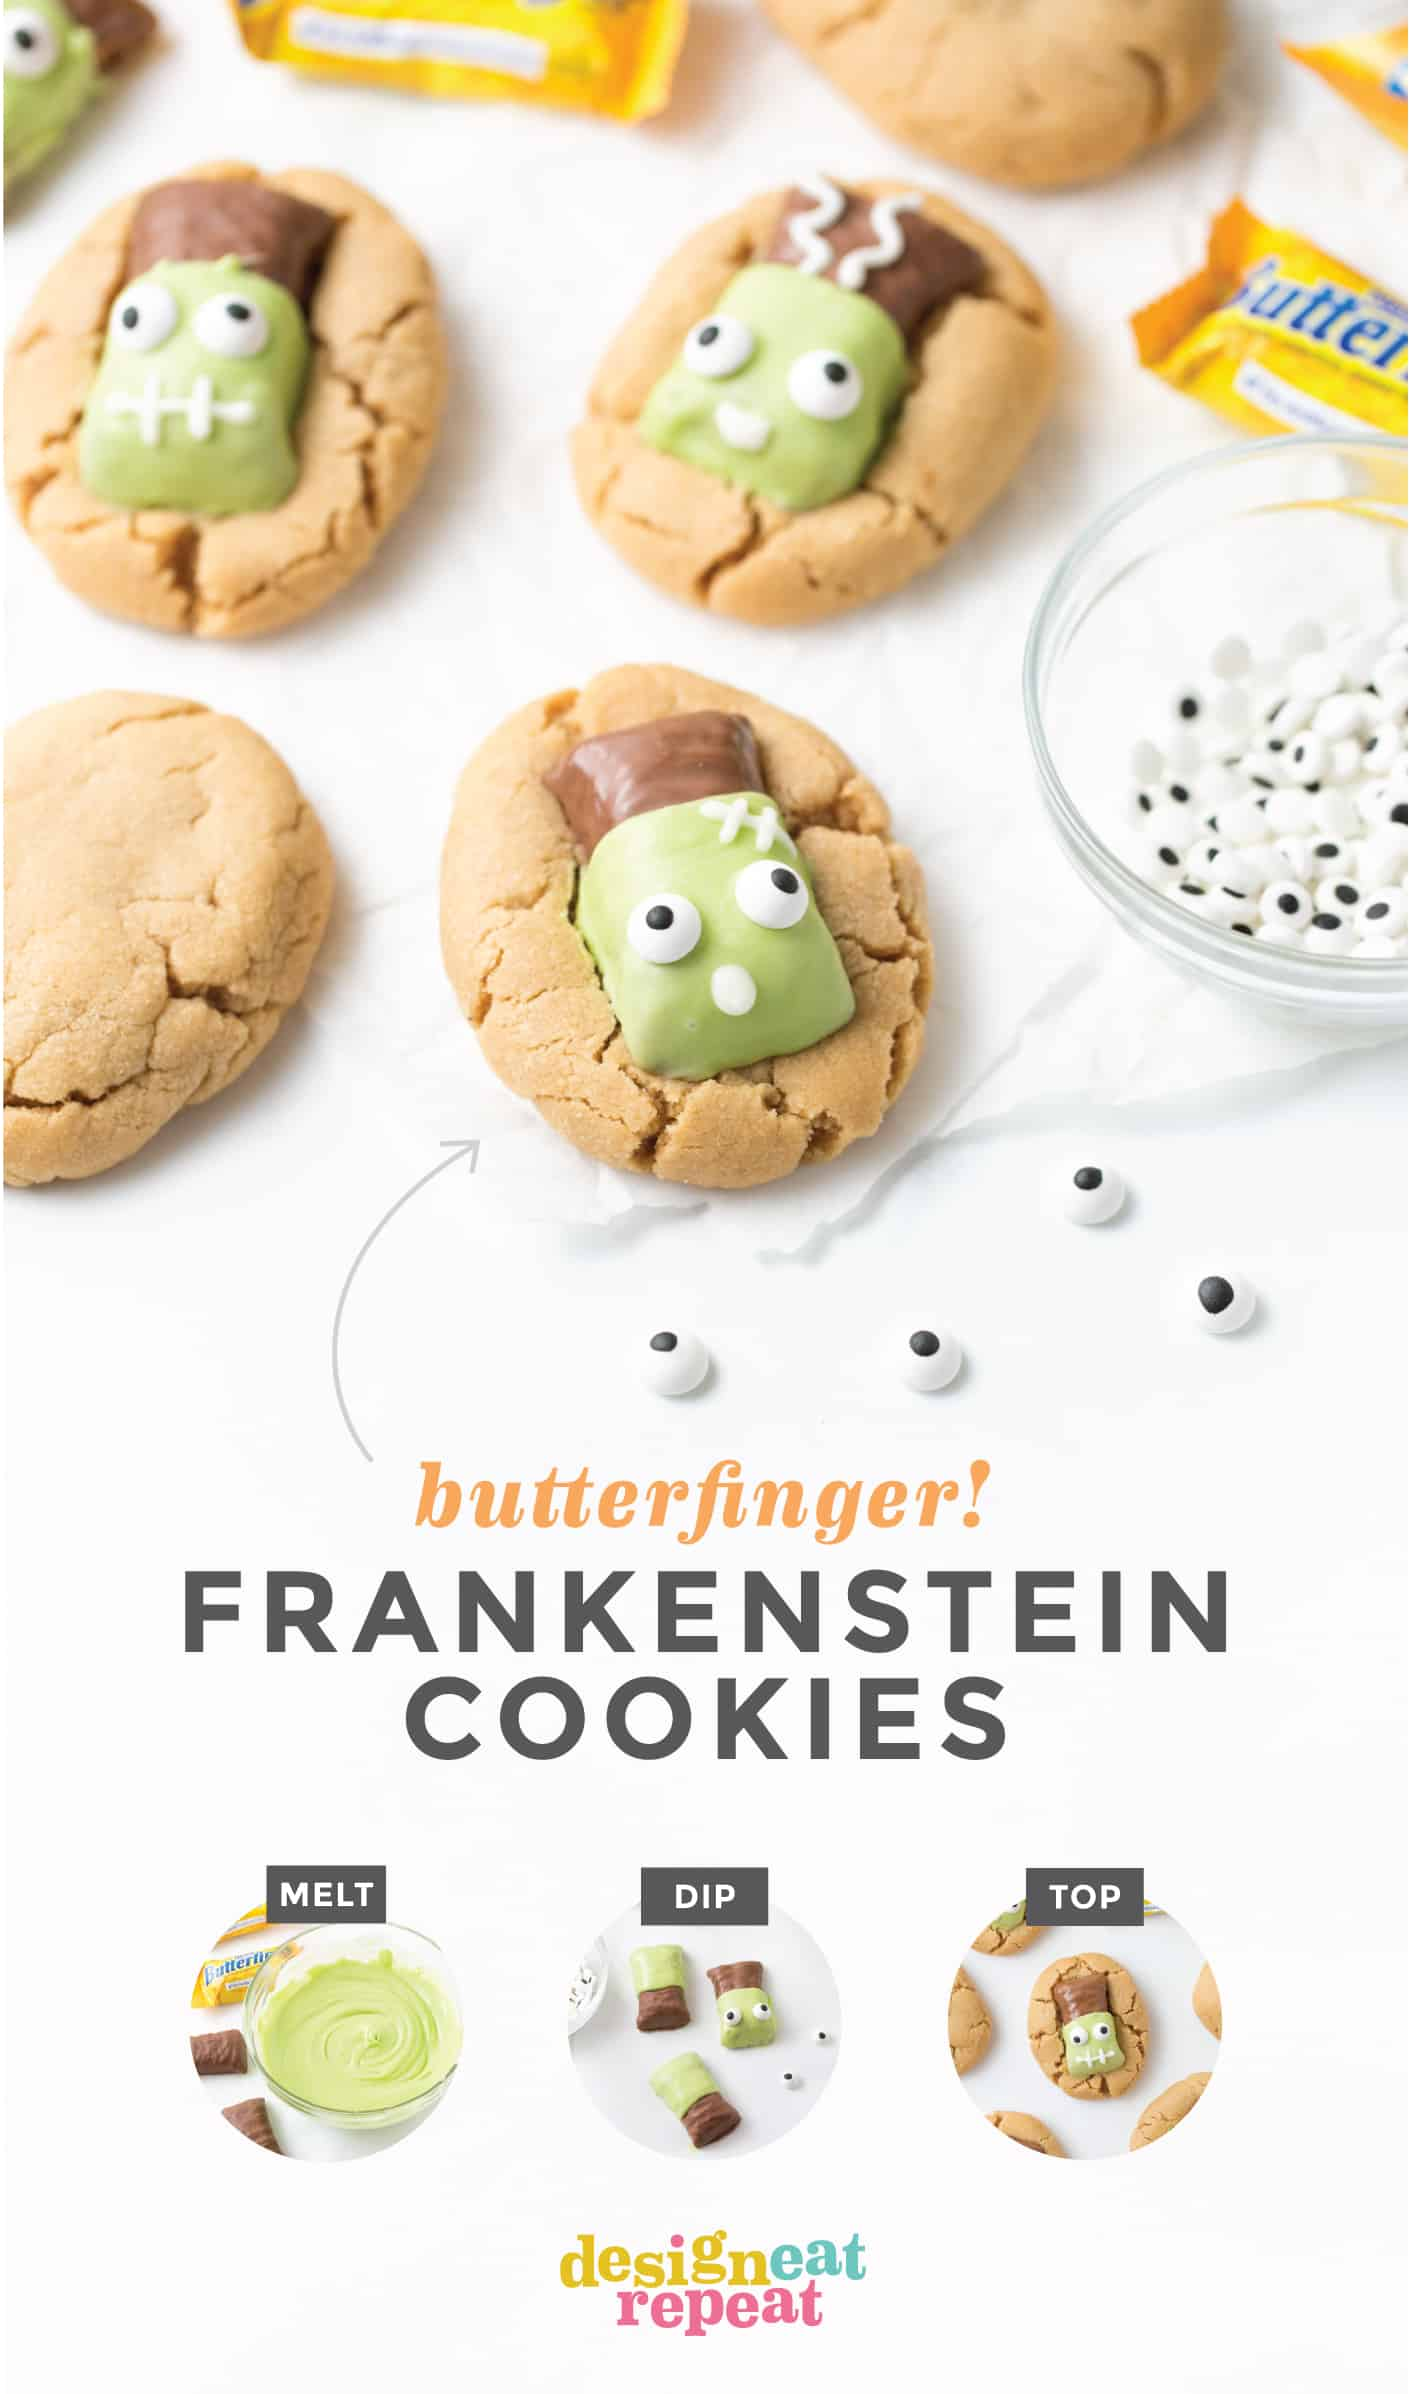 peanut butter cookies with butterfinger frankensteins on top butterfinger candy bar dipped in green white